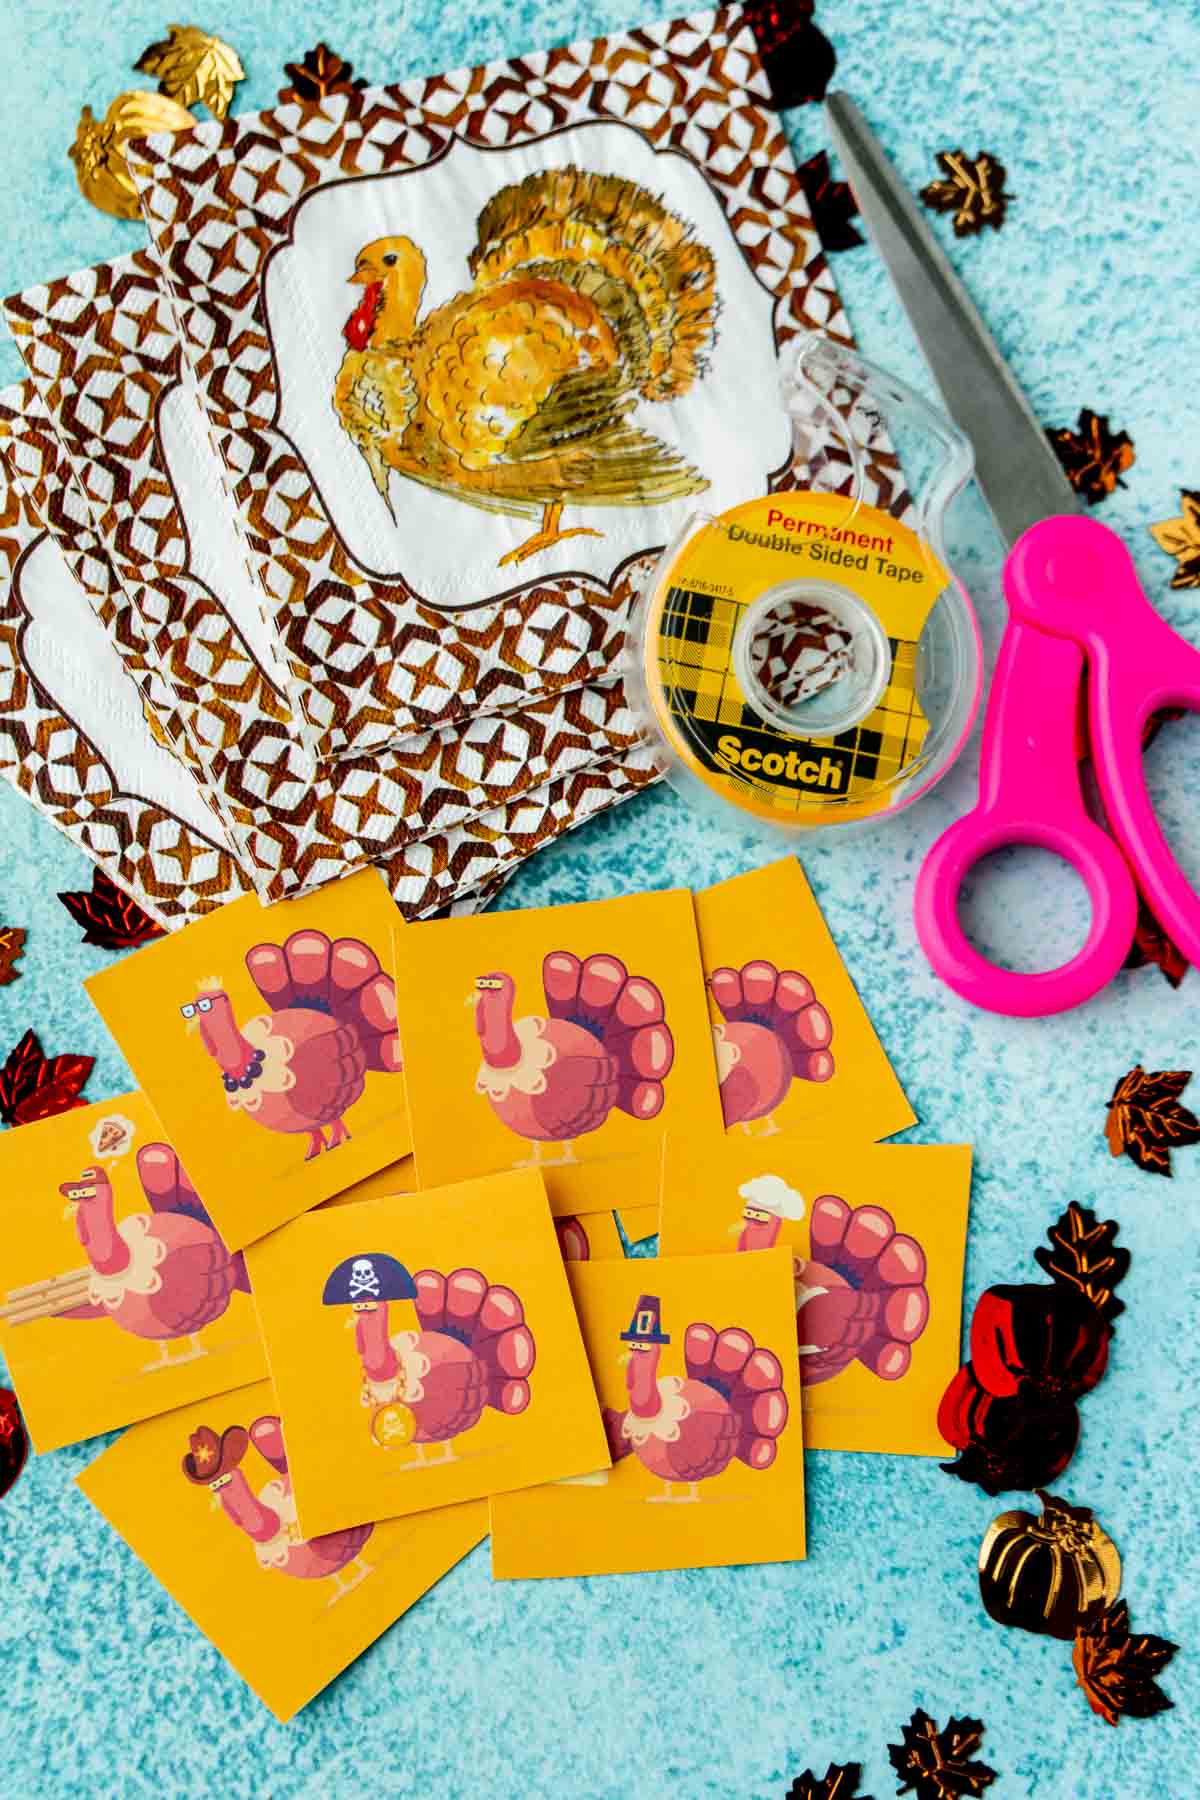 Turkey hunt cards with scissors and tape